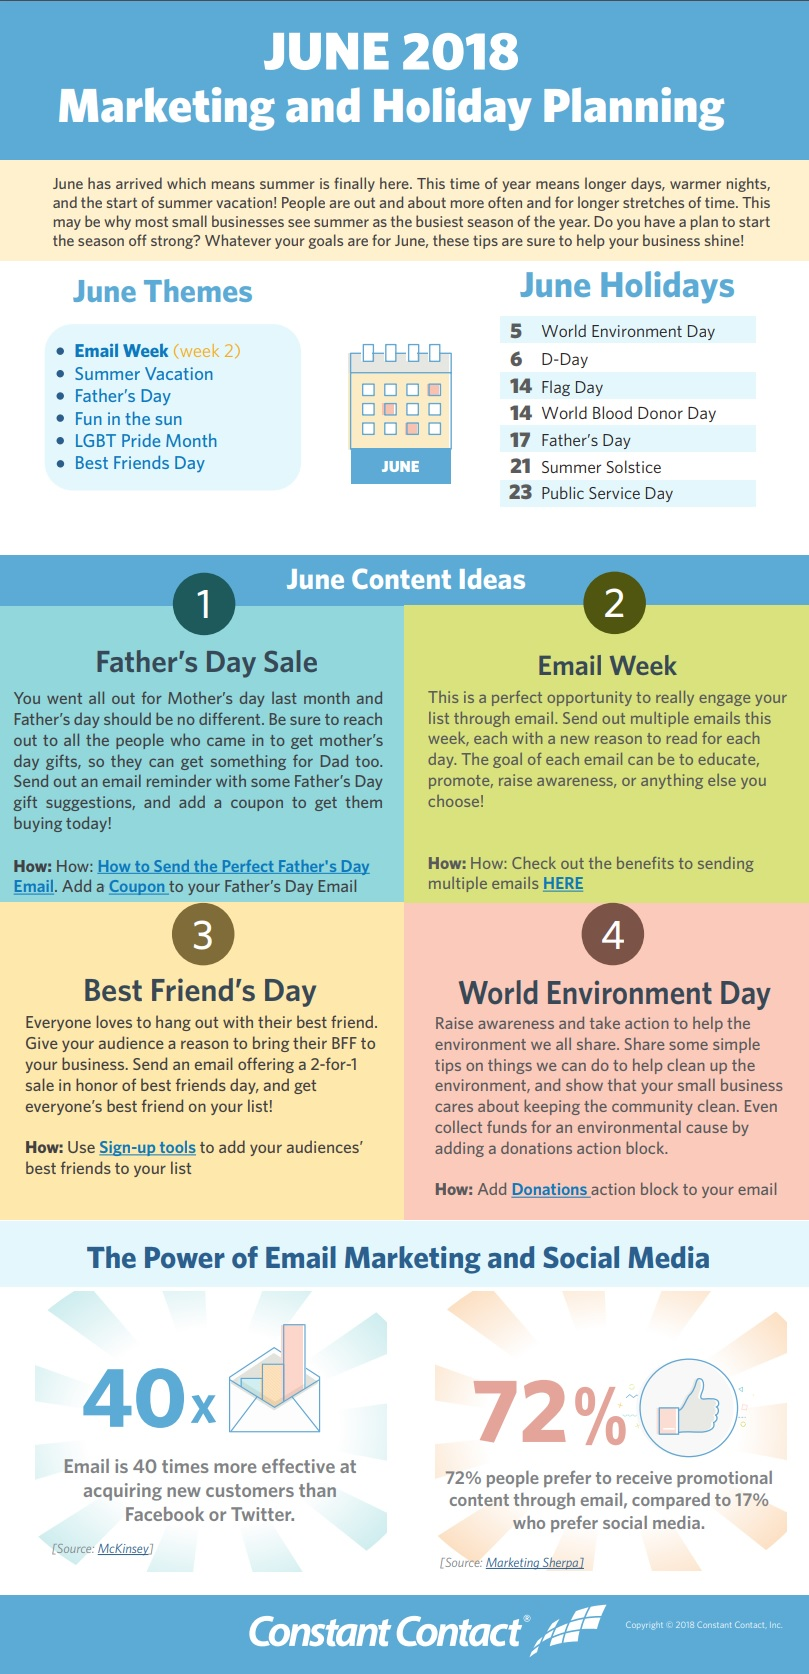 [Infographic] June 2018 Marketing and Holiday Planning 2